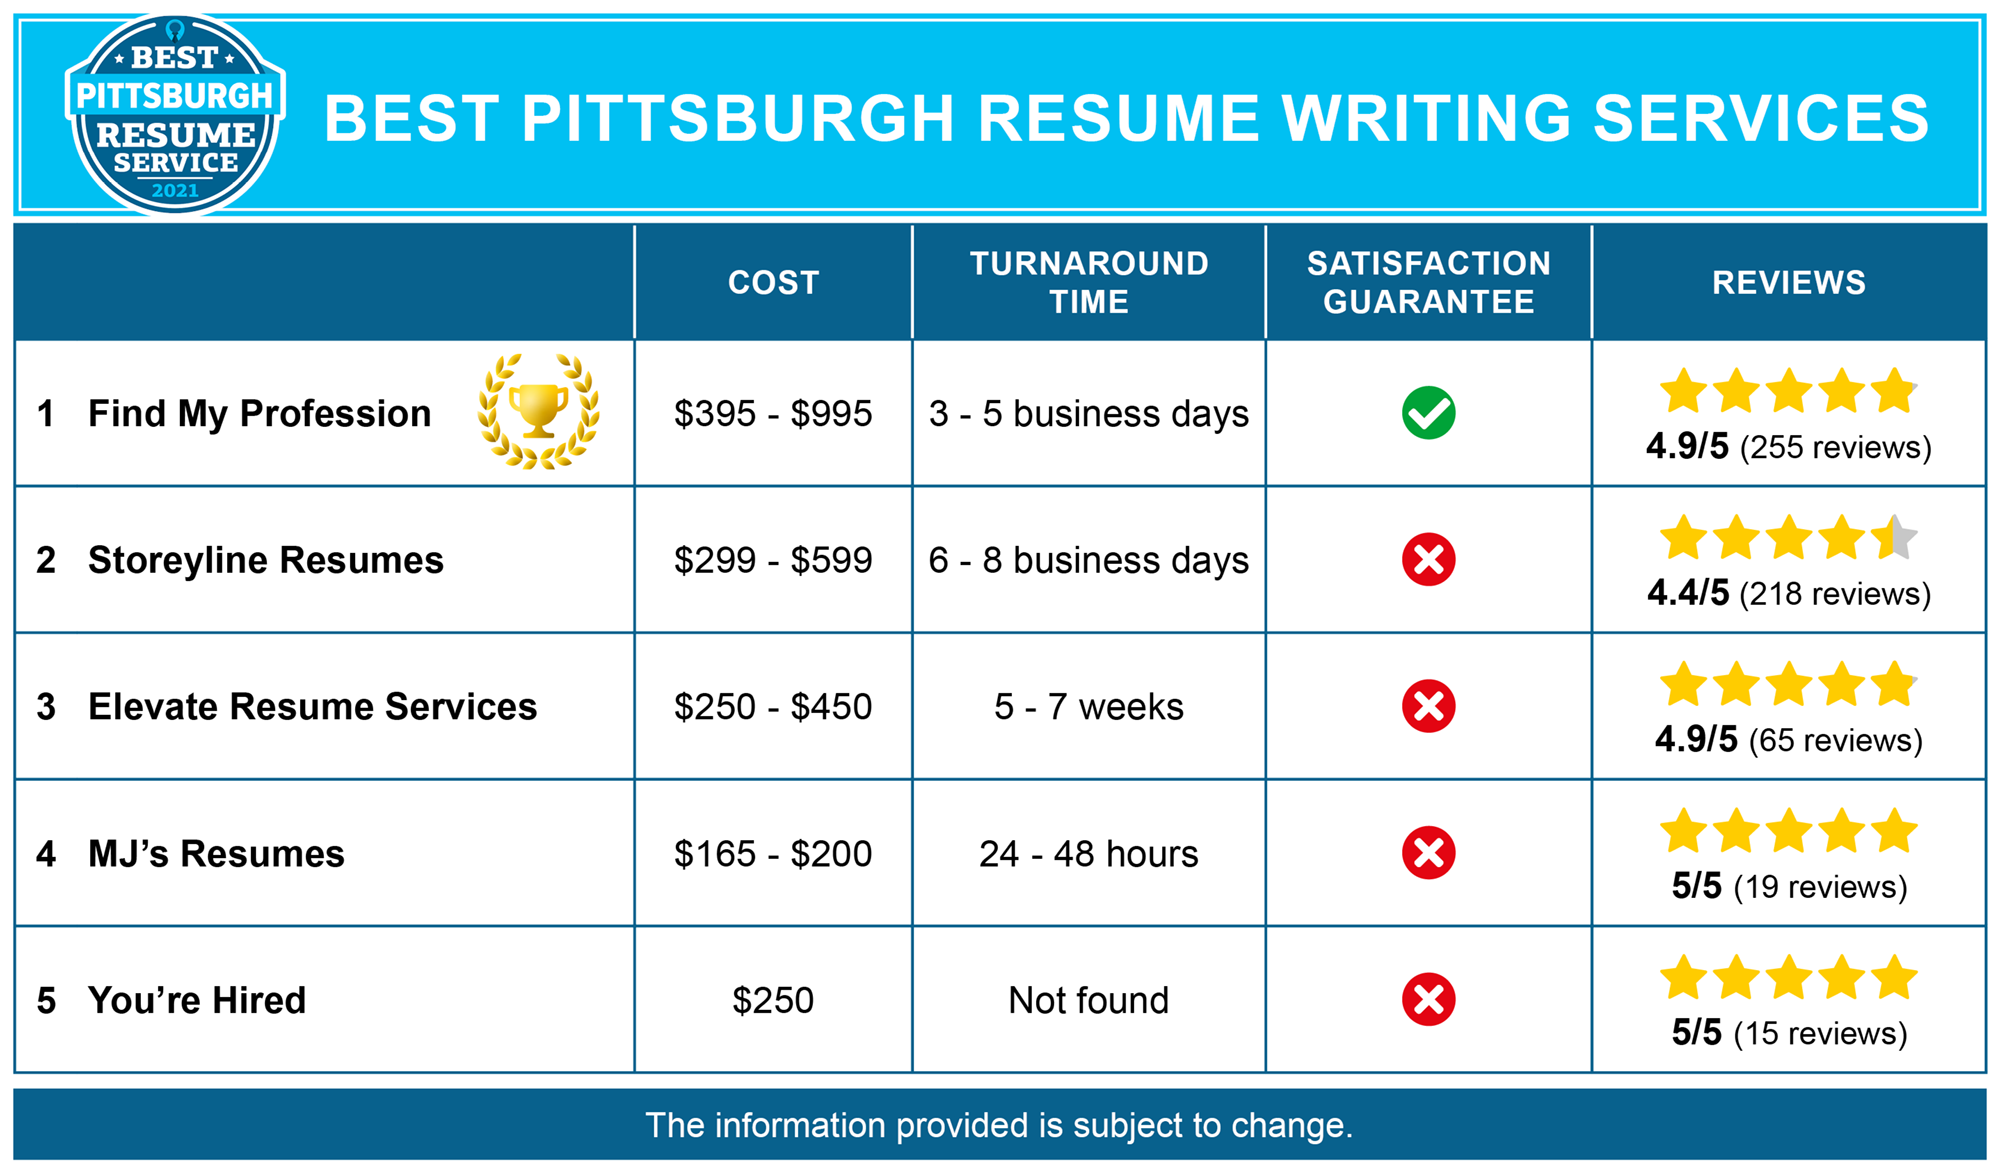 Best Pittsburg Resume Services